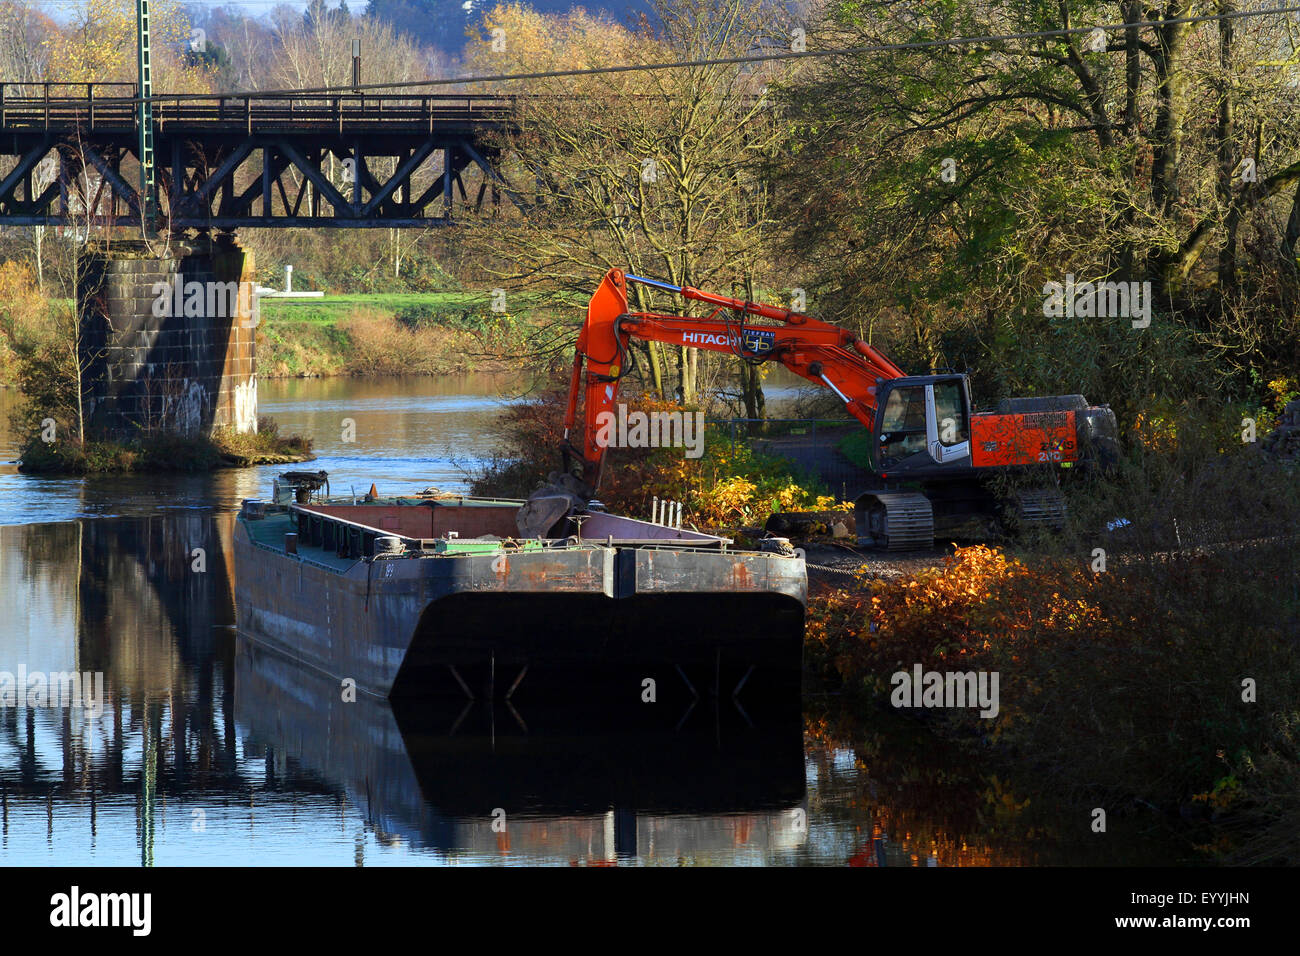 river bank reinforcement, water engineering, Germany - Stock Image